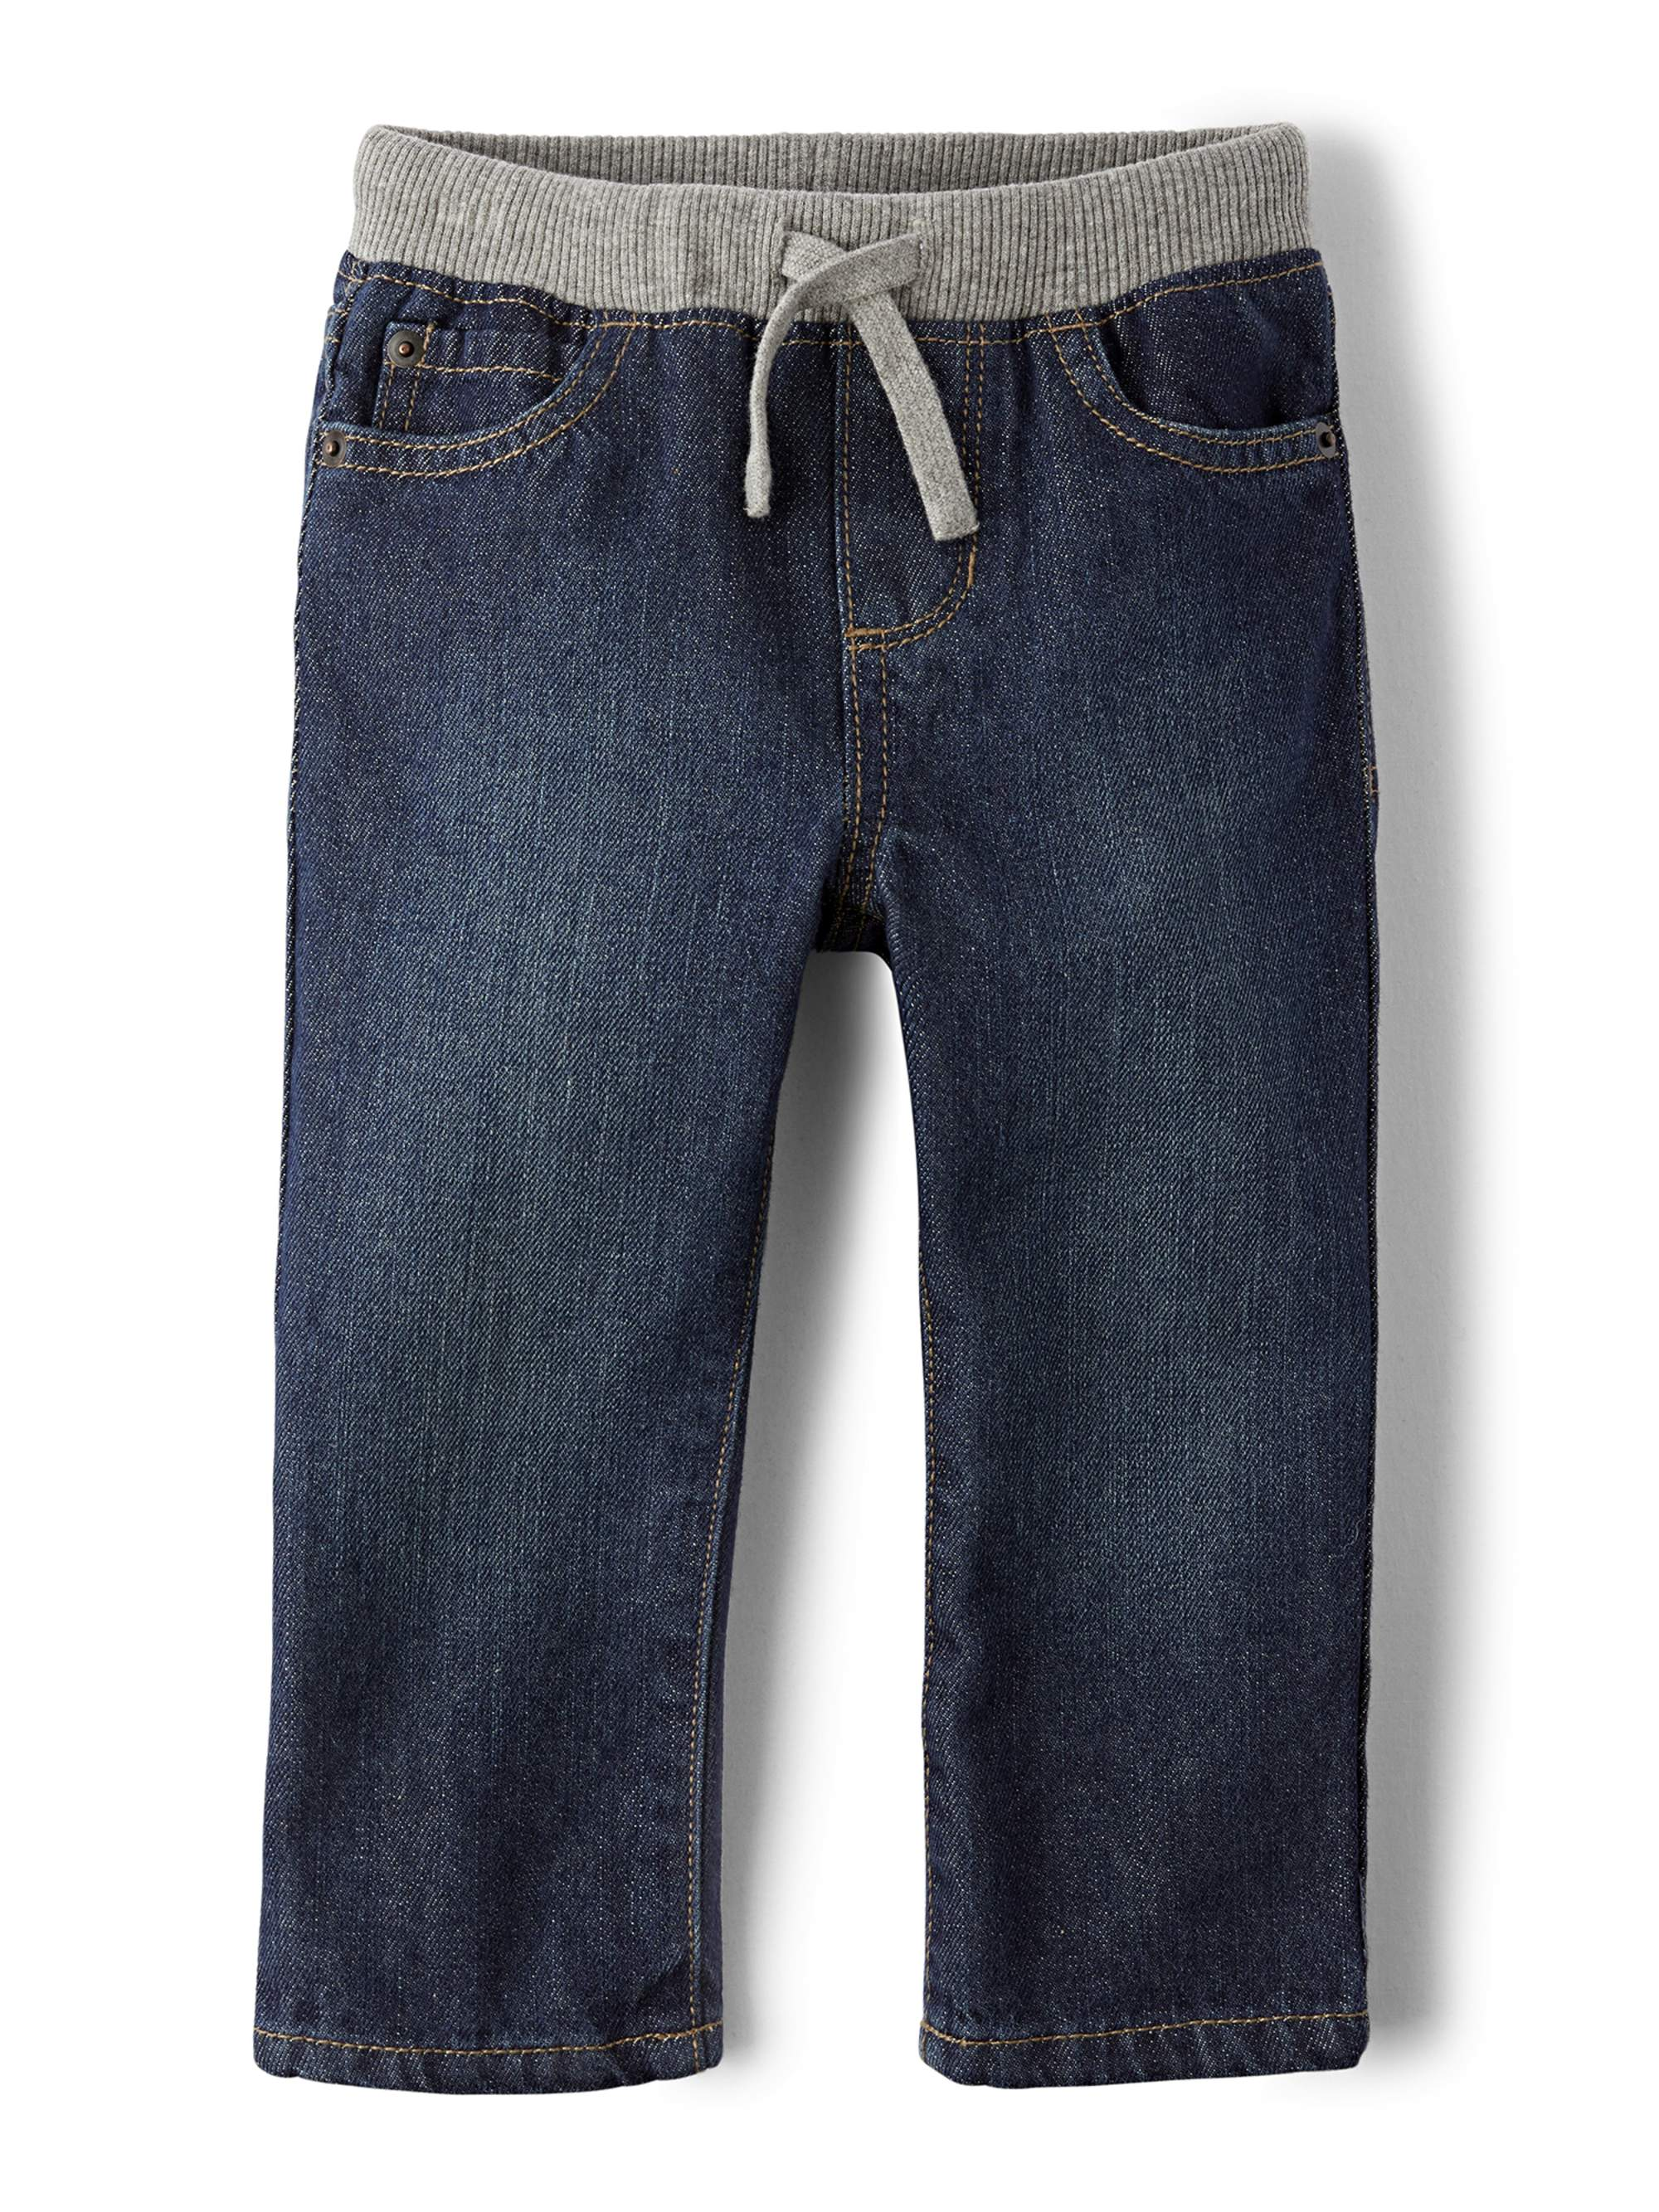 Knit Waist Band Pull-On Jeans (Toddler Boys)